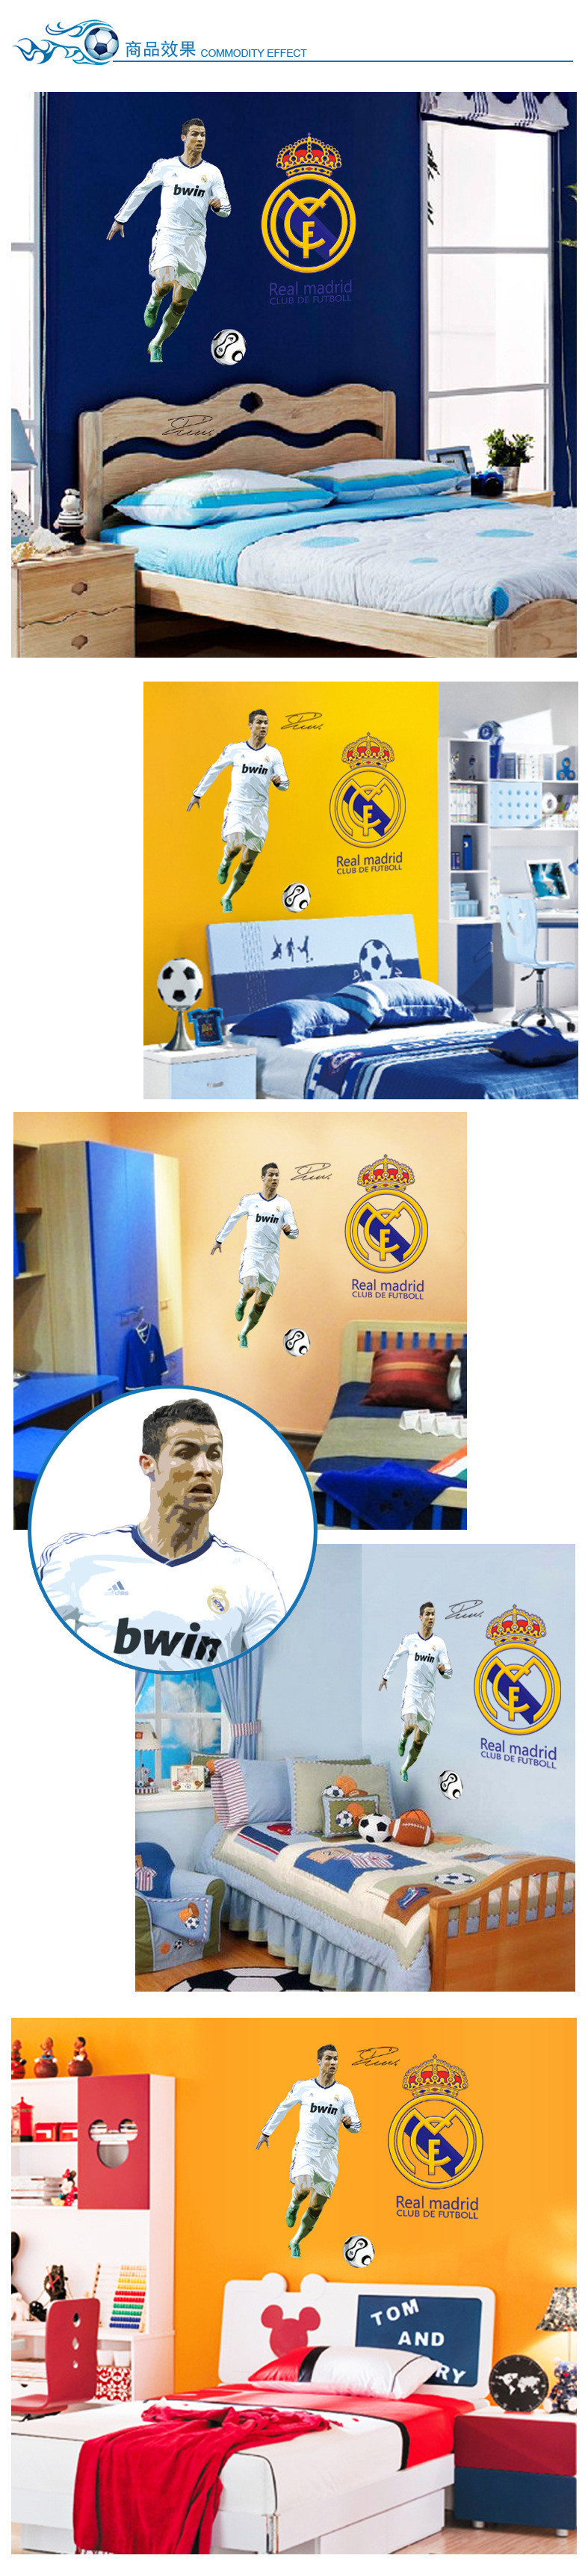 grand sticker geant mural 110x90 christiano ronaldo cr7 real madrid deco poster ebay